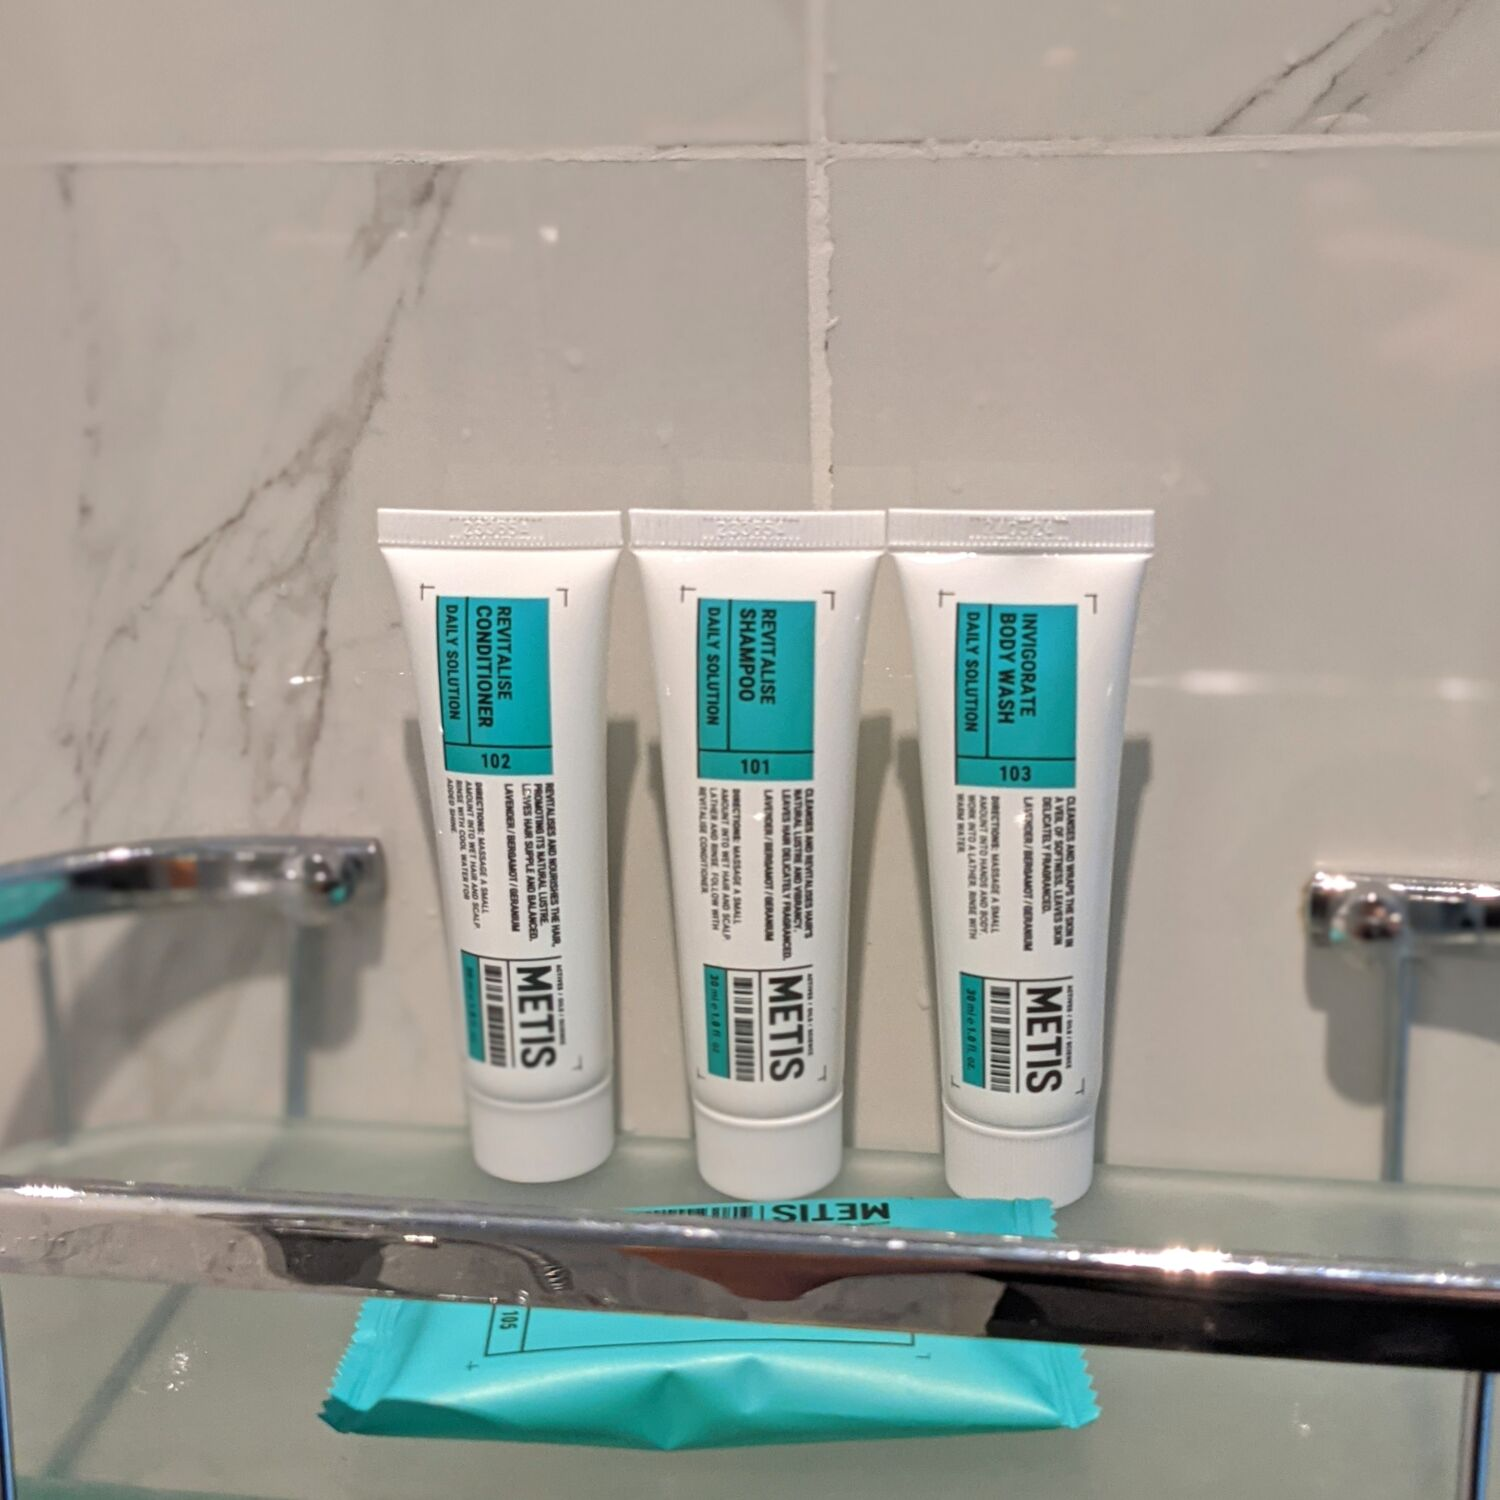 Hotel G Singapore Greater Room with Balcony Bathroom Amenities